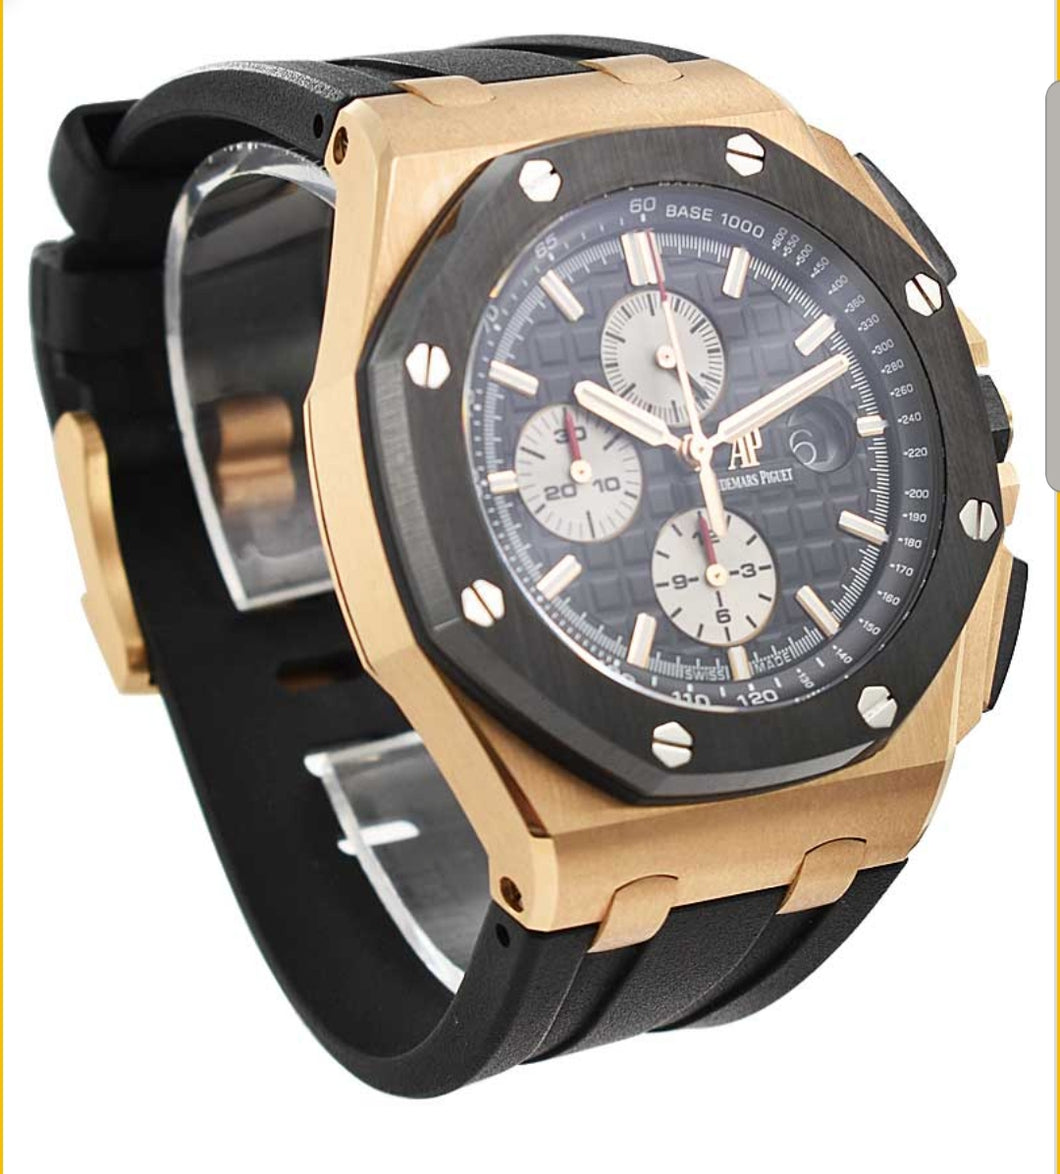 Audemars Piguet  Royal Oak Offshore Chronograph in Rose Gold with Black Ceram